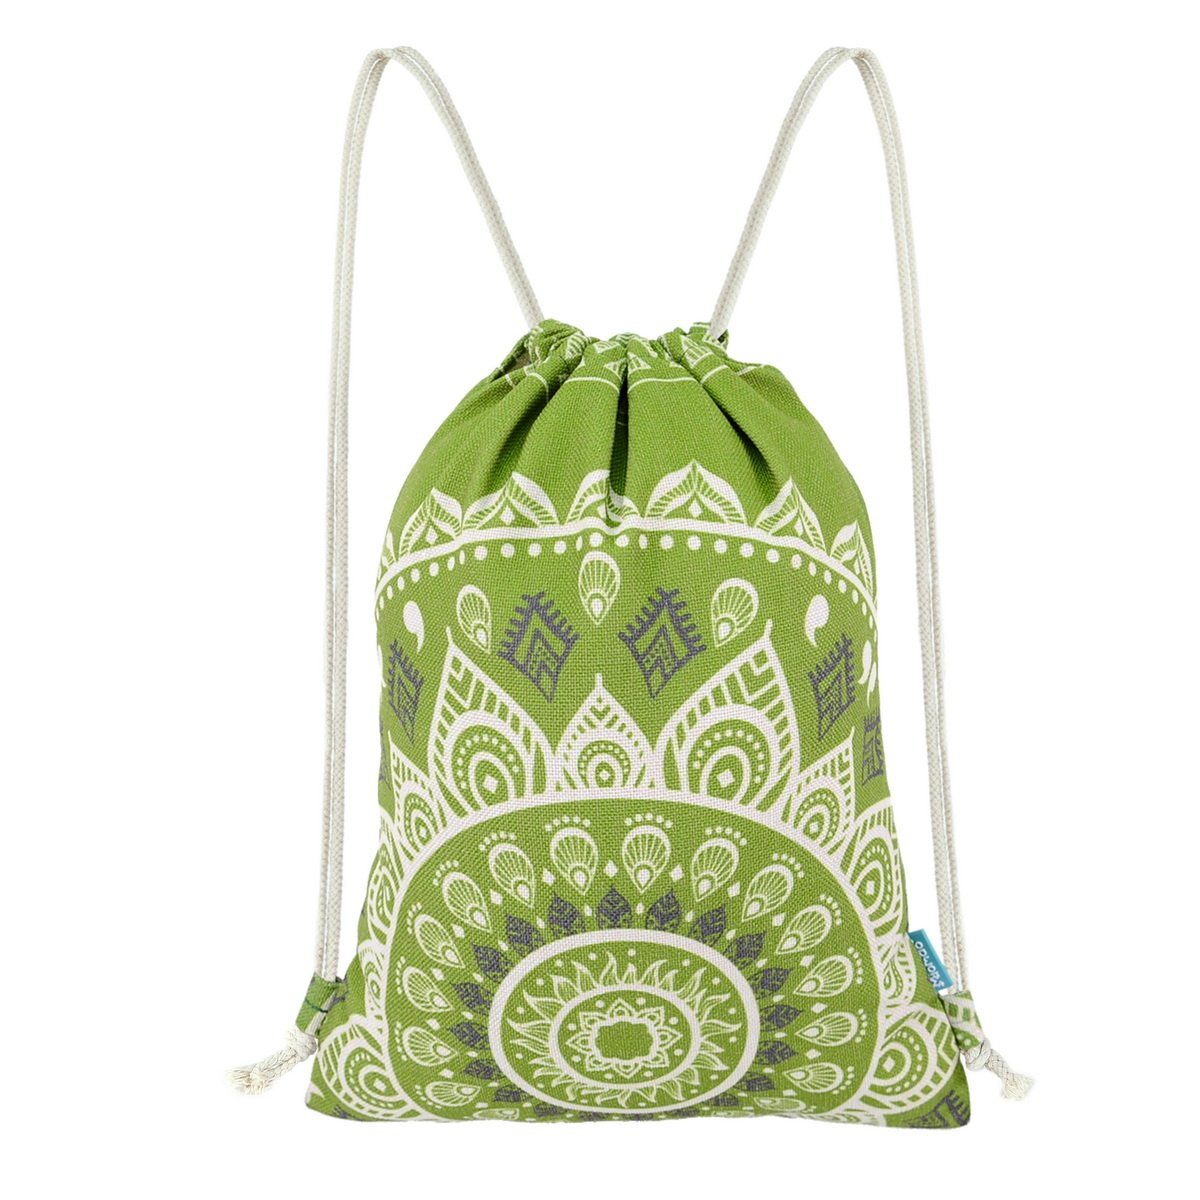 Miomao Drawstring Backpack Gym Sack Pack Mandala Style String Bag With Pocket Canvas Sinch Sack Sport Cinch Pack Christmas Gift Bags Beach Rucksack 13 X 18 Inches Olive Green